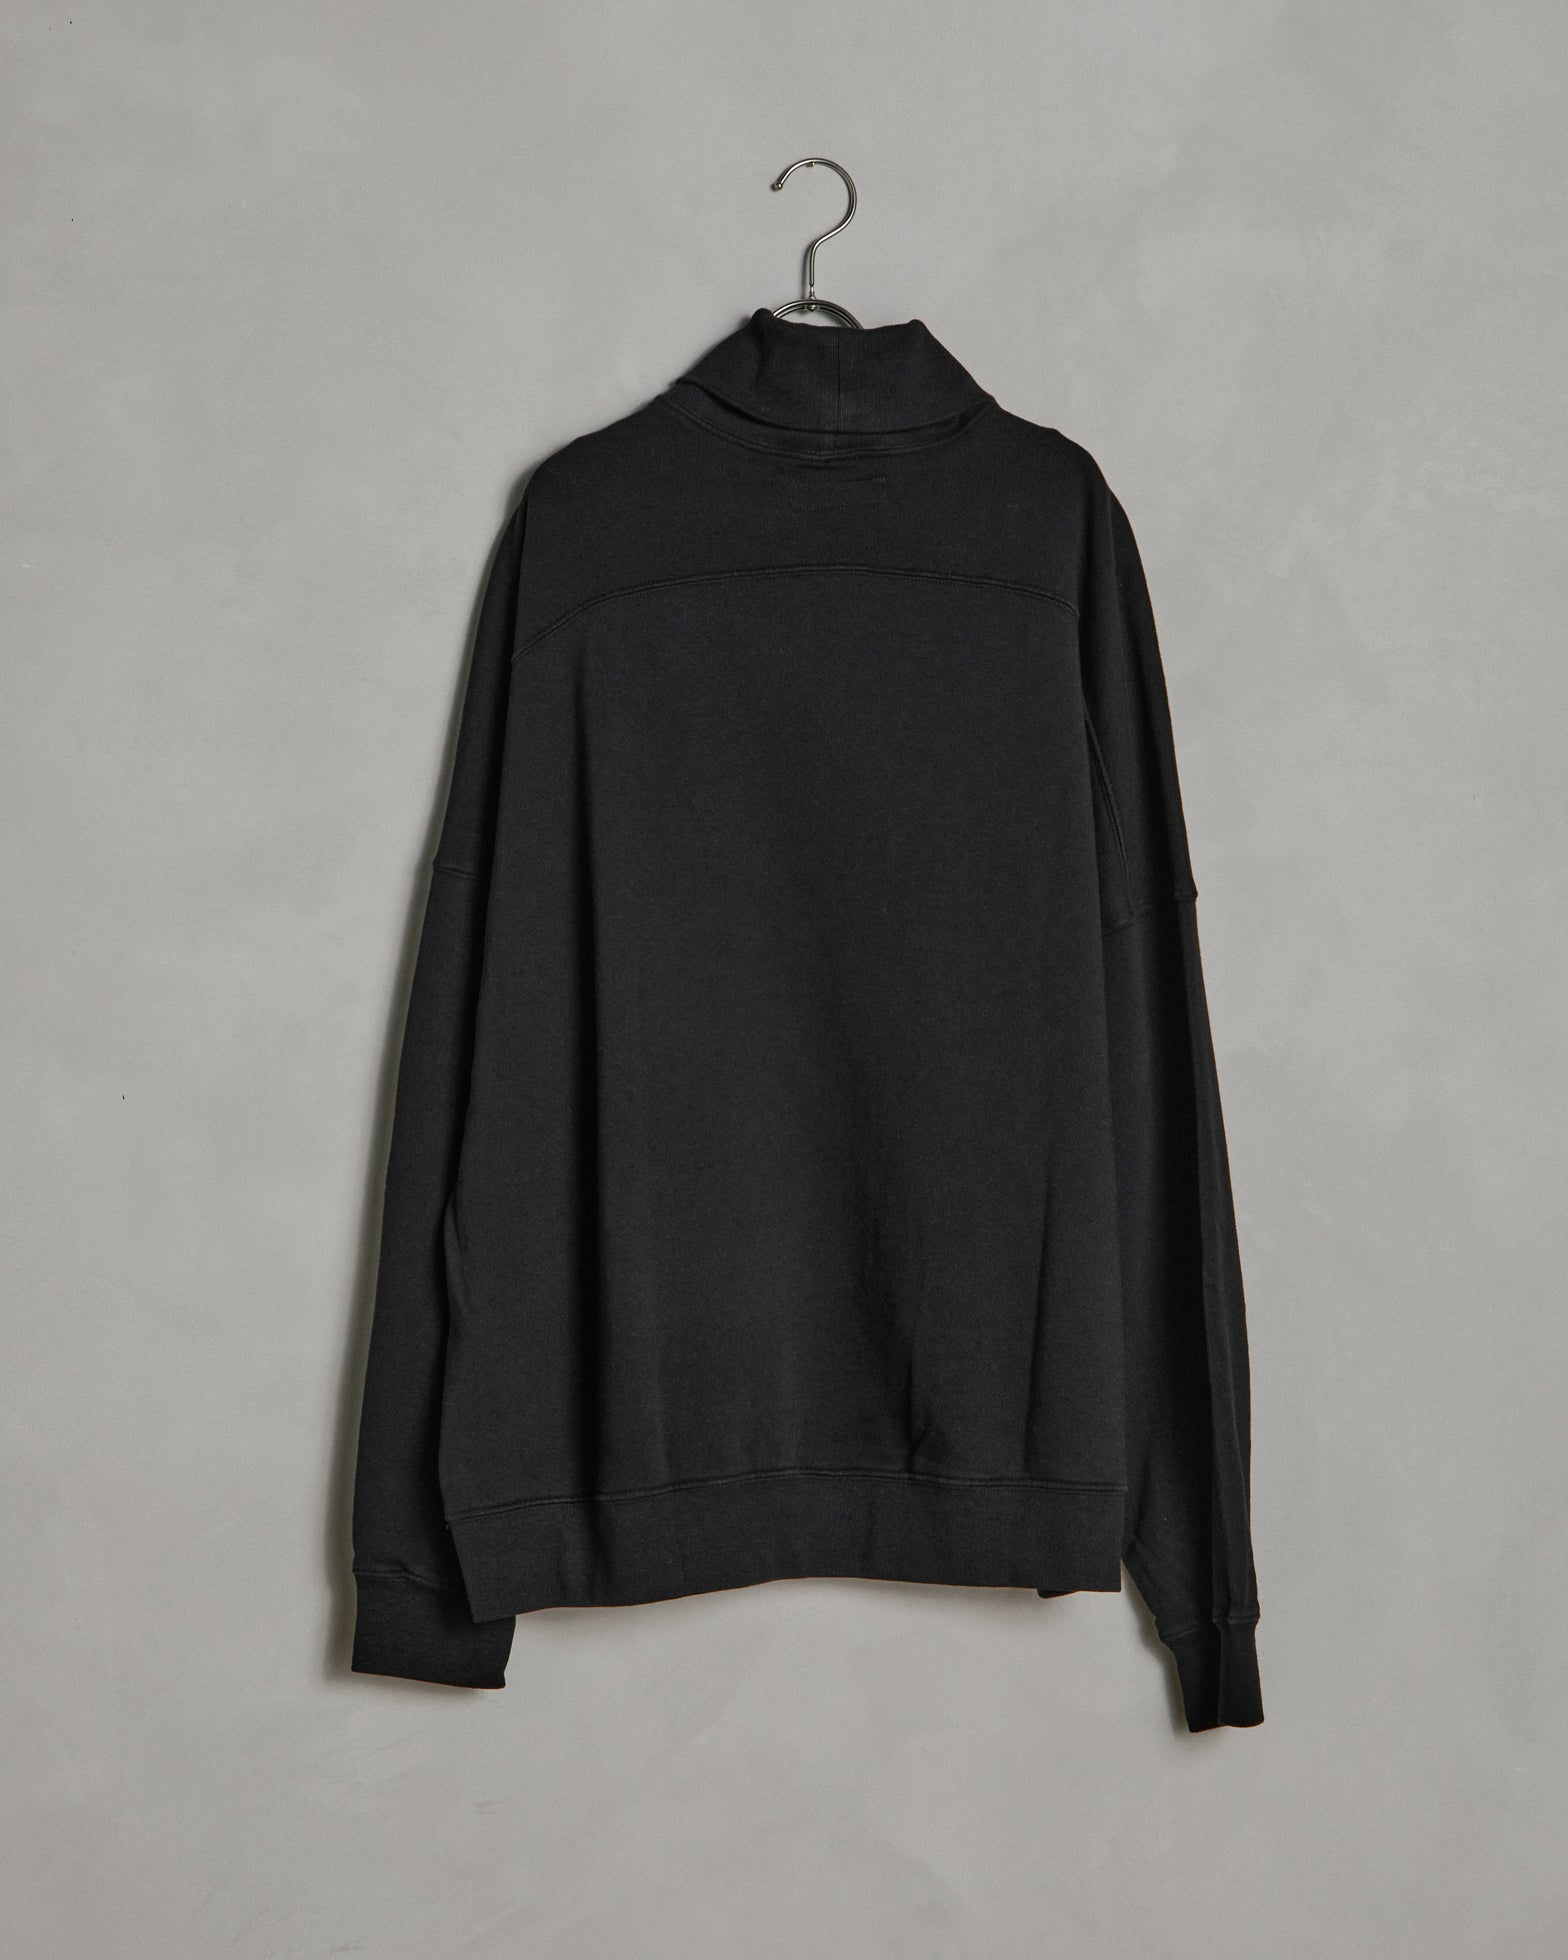 Turtleneck Sweatshirt in Black